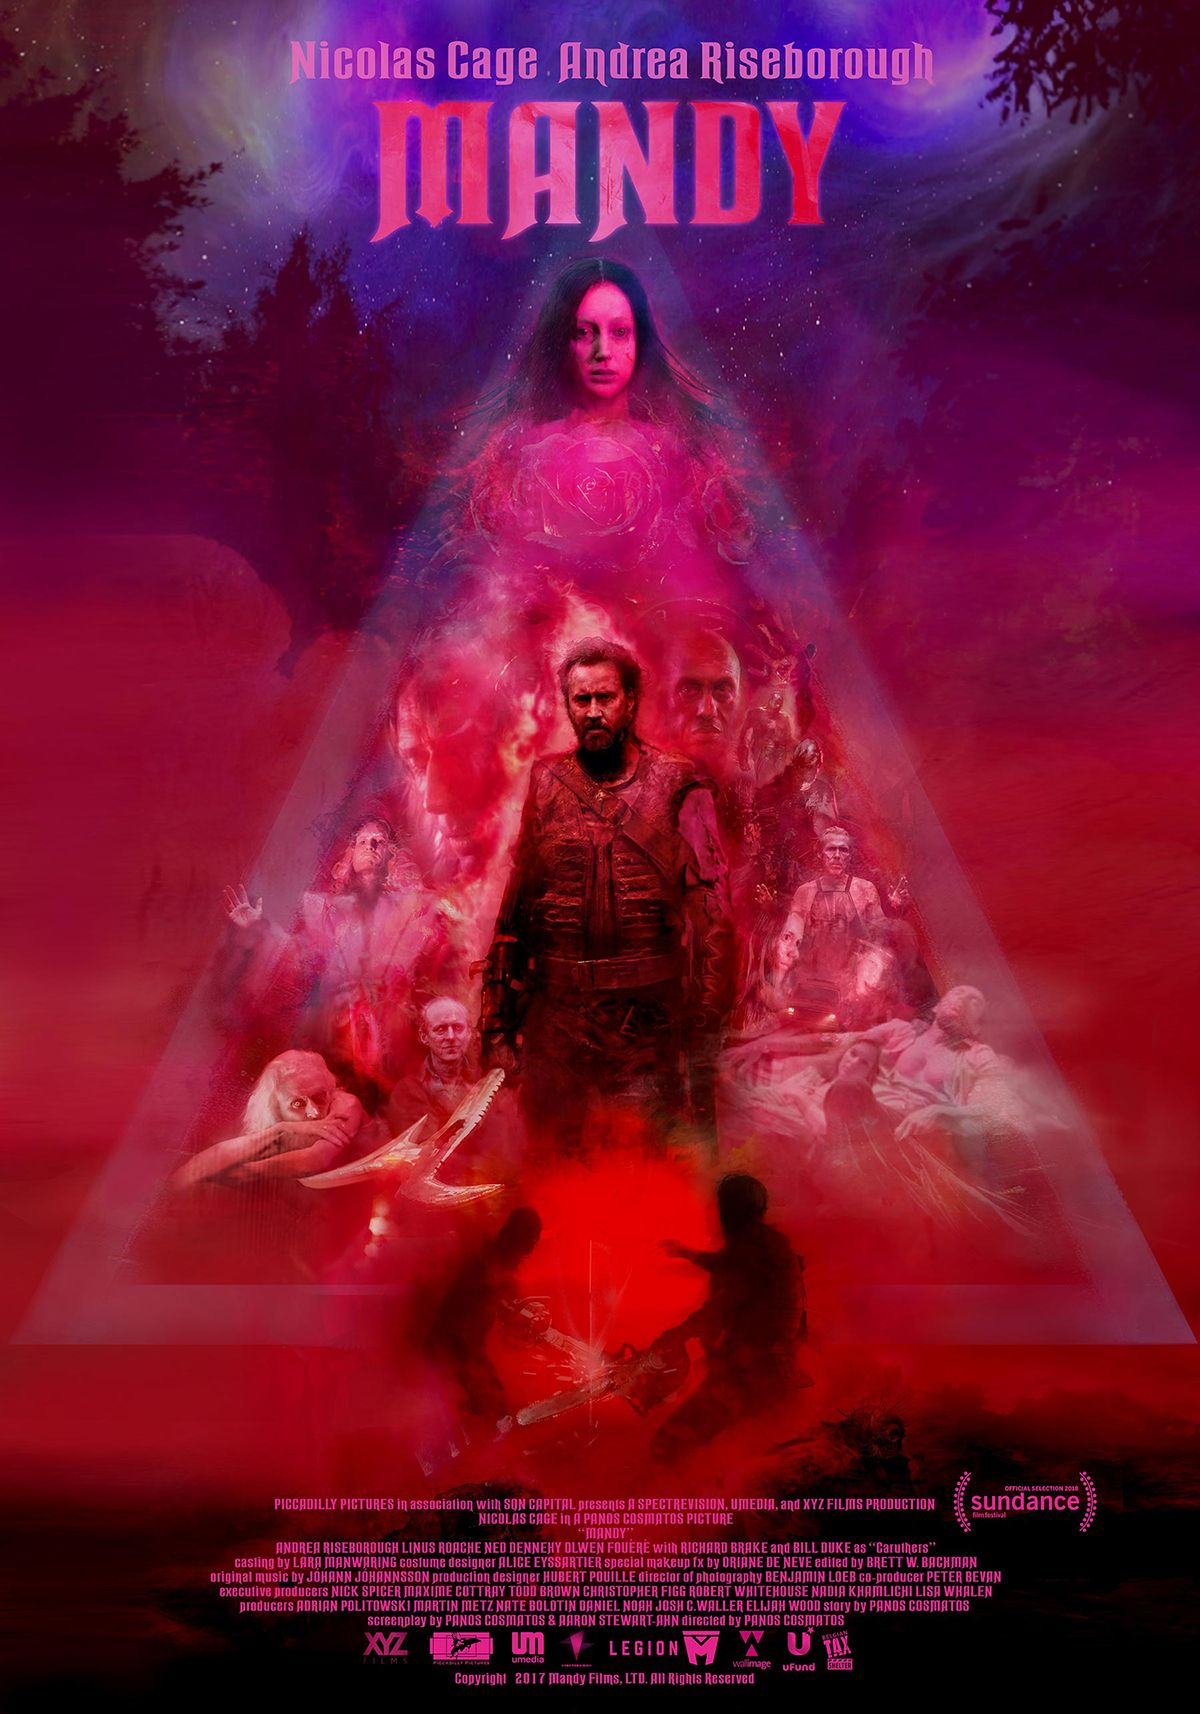 Mandy 2018 M 18 2h 1min Action Horror Thriller 27 September 2018 Portugal Full Movies Movies Online Streaming Movies Online